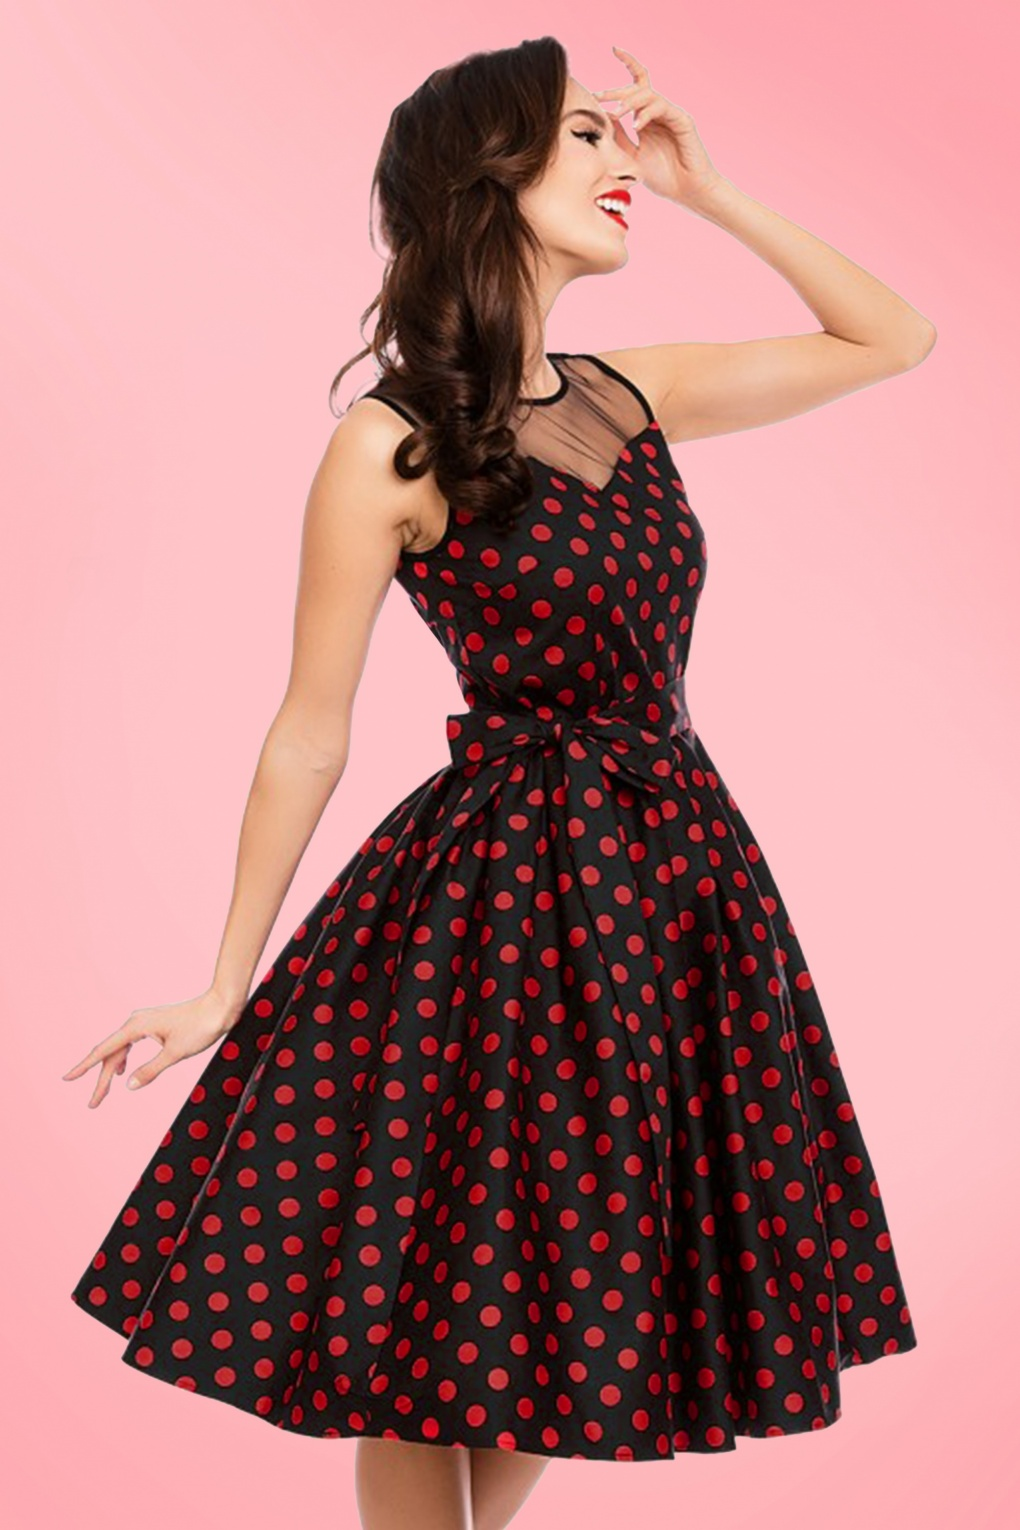 1940s Pinup Dresses for Sale 50s Elizabeth Polkadot Swing Dress in Black and Red £20.30 AT vintagedancer.com